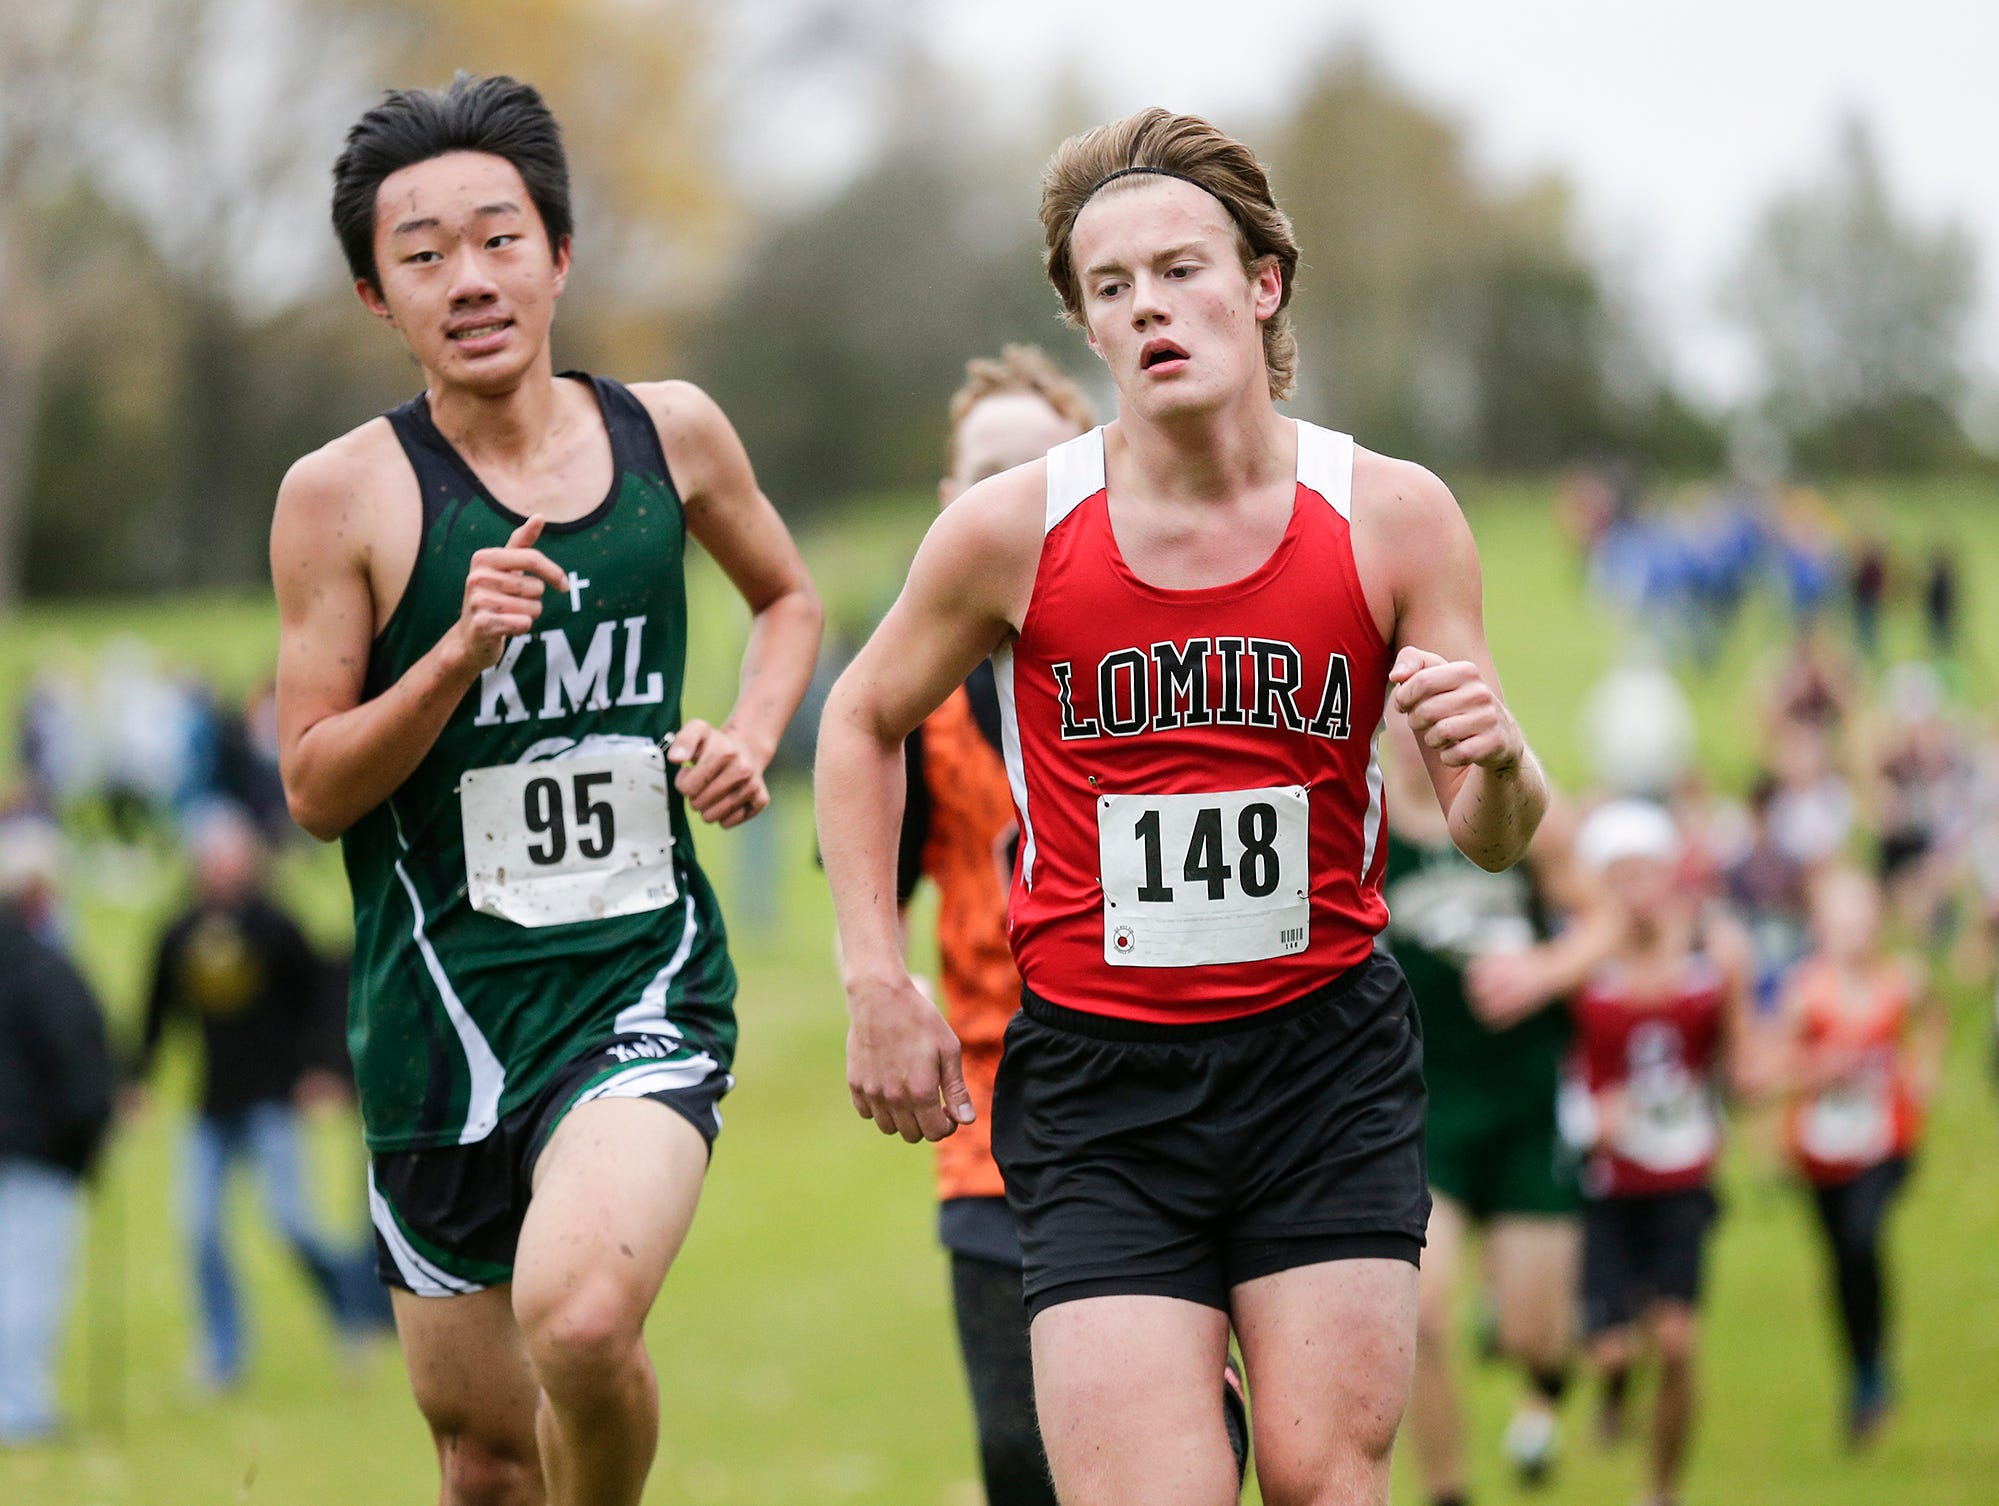 Lomira High School's Ian VanderGrinten and Kettle Moraine Lutheran's Isaiah Zhou run in the WIAA Division two Mayville sectional cross country meet at the Mayville golf course Friday, October 19, 2018. Doug Raflik/USA TODAY NETWORK-Wisconsin